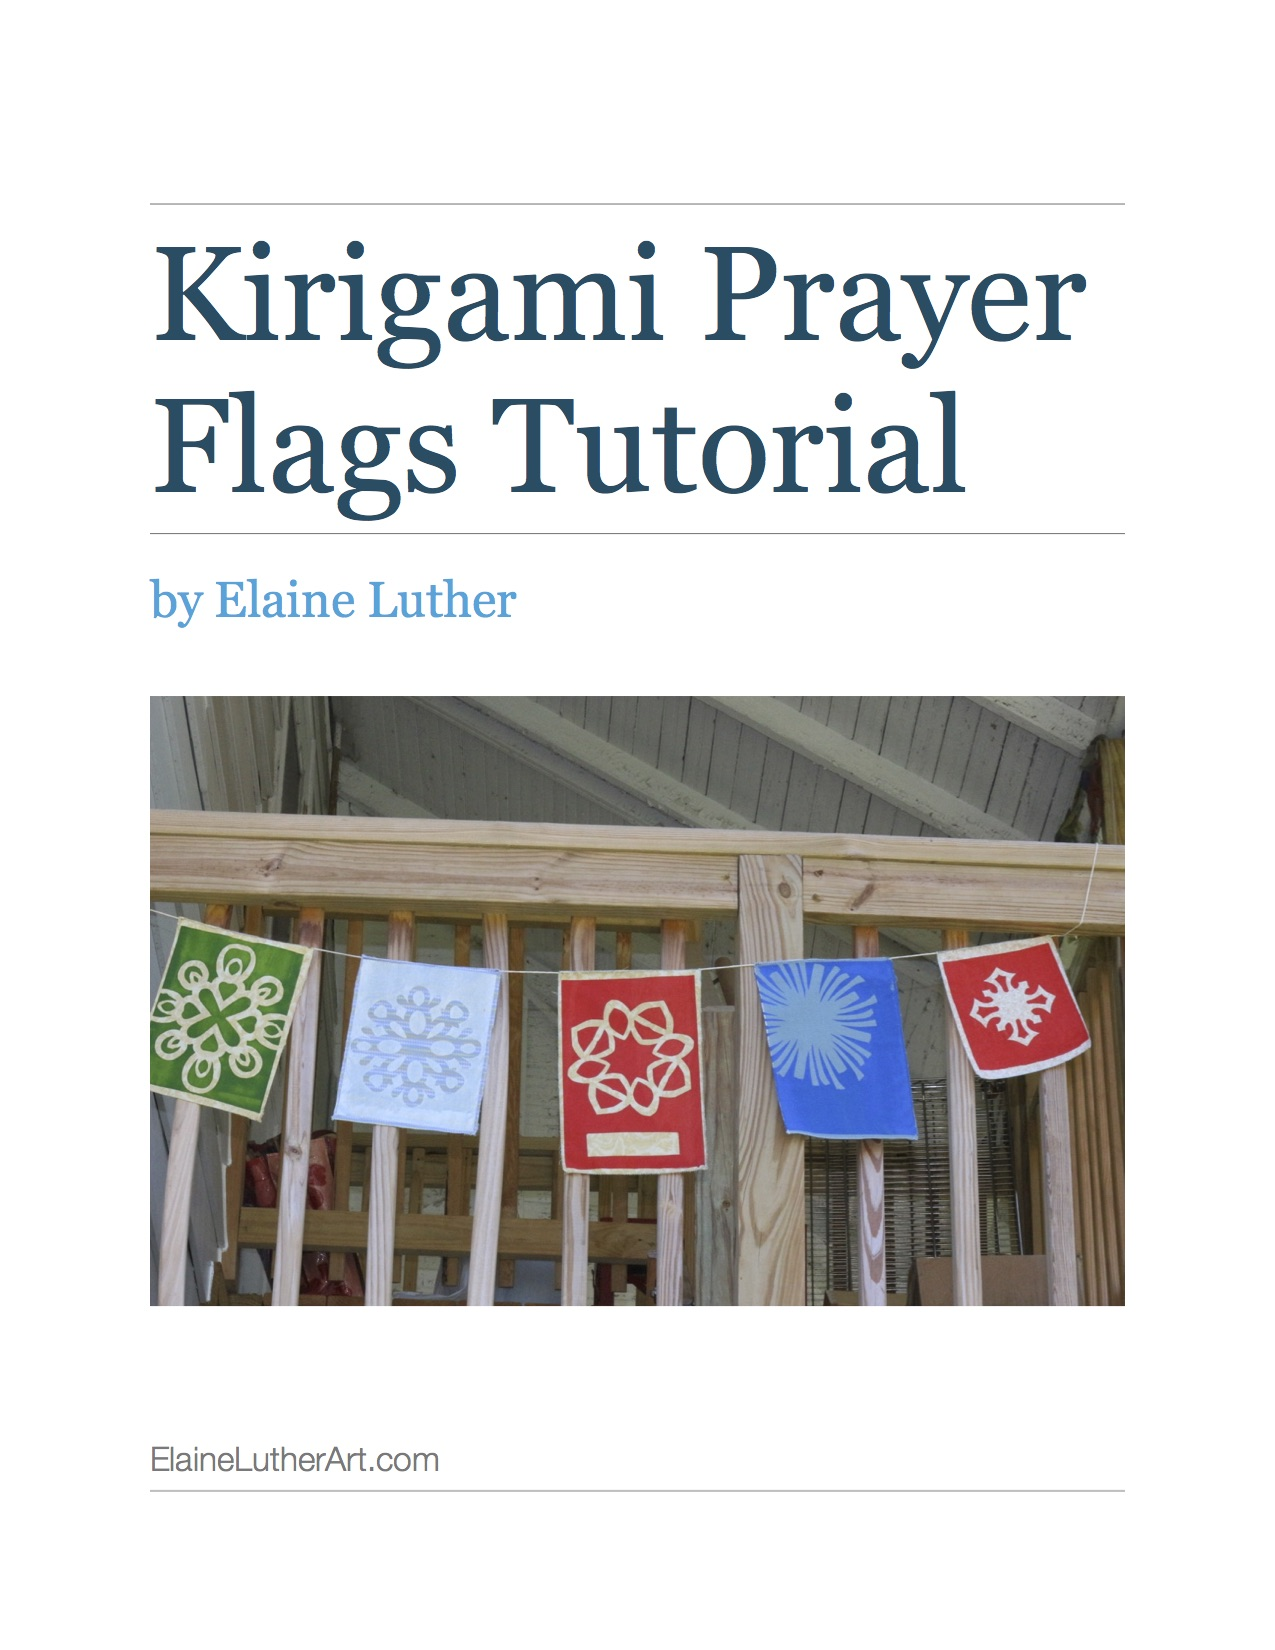 New Tutorial – Kirigami Prayer Flags!